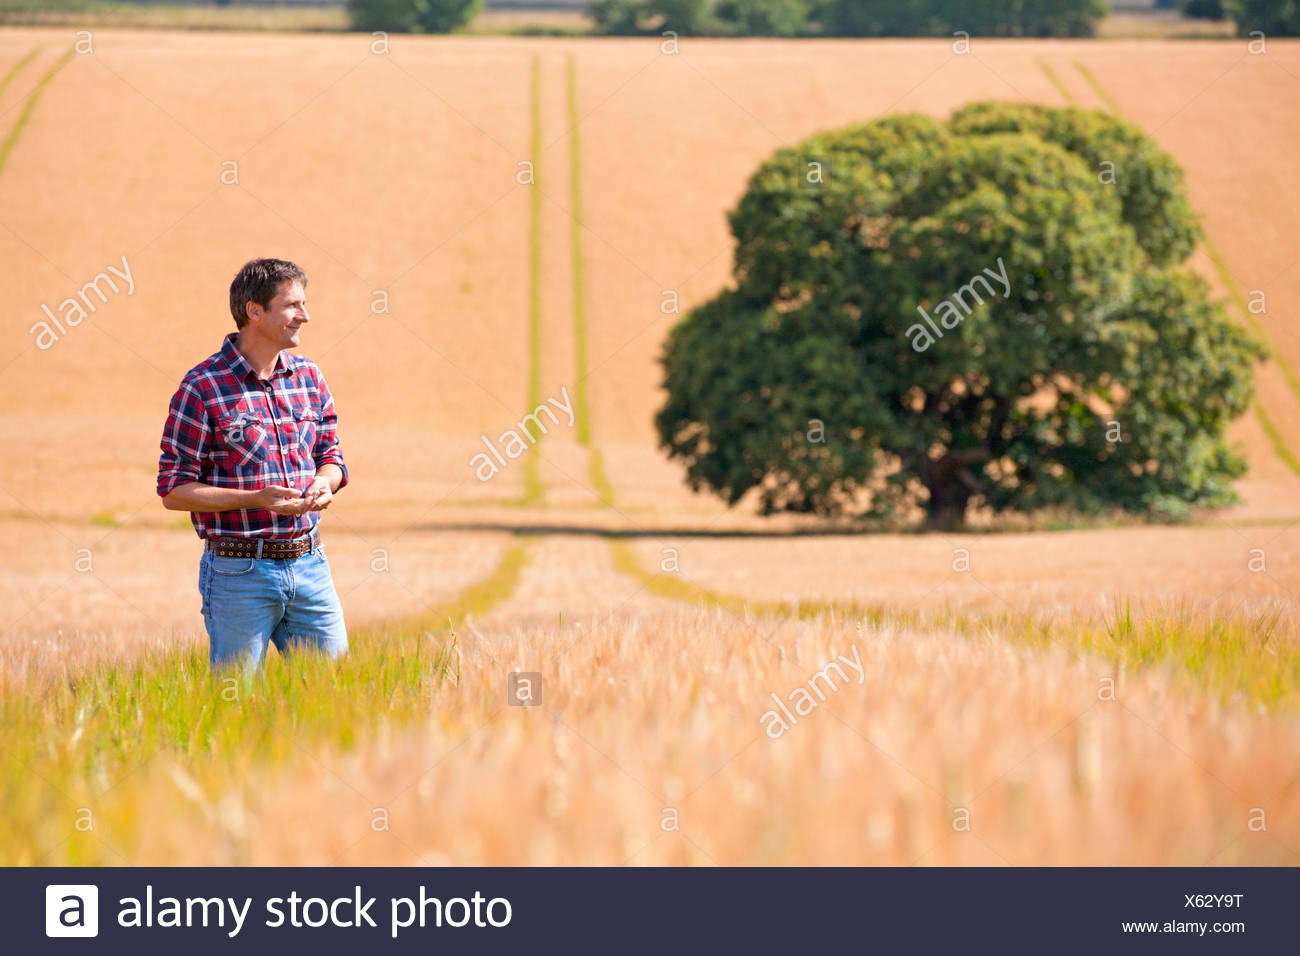 Farmer standing in rural crop field orge ensoleillée en été Photo Stock